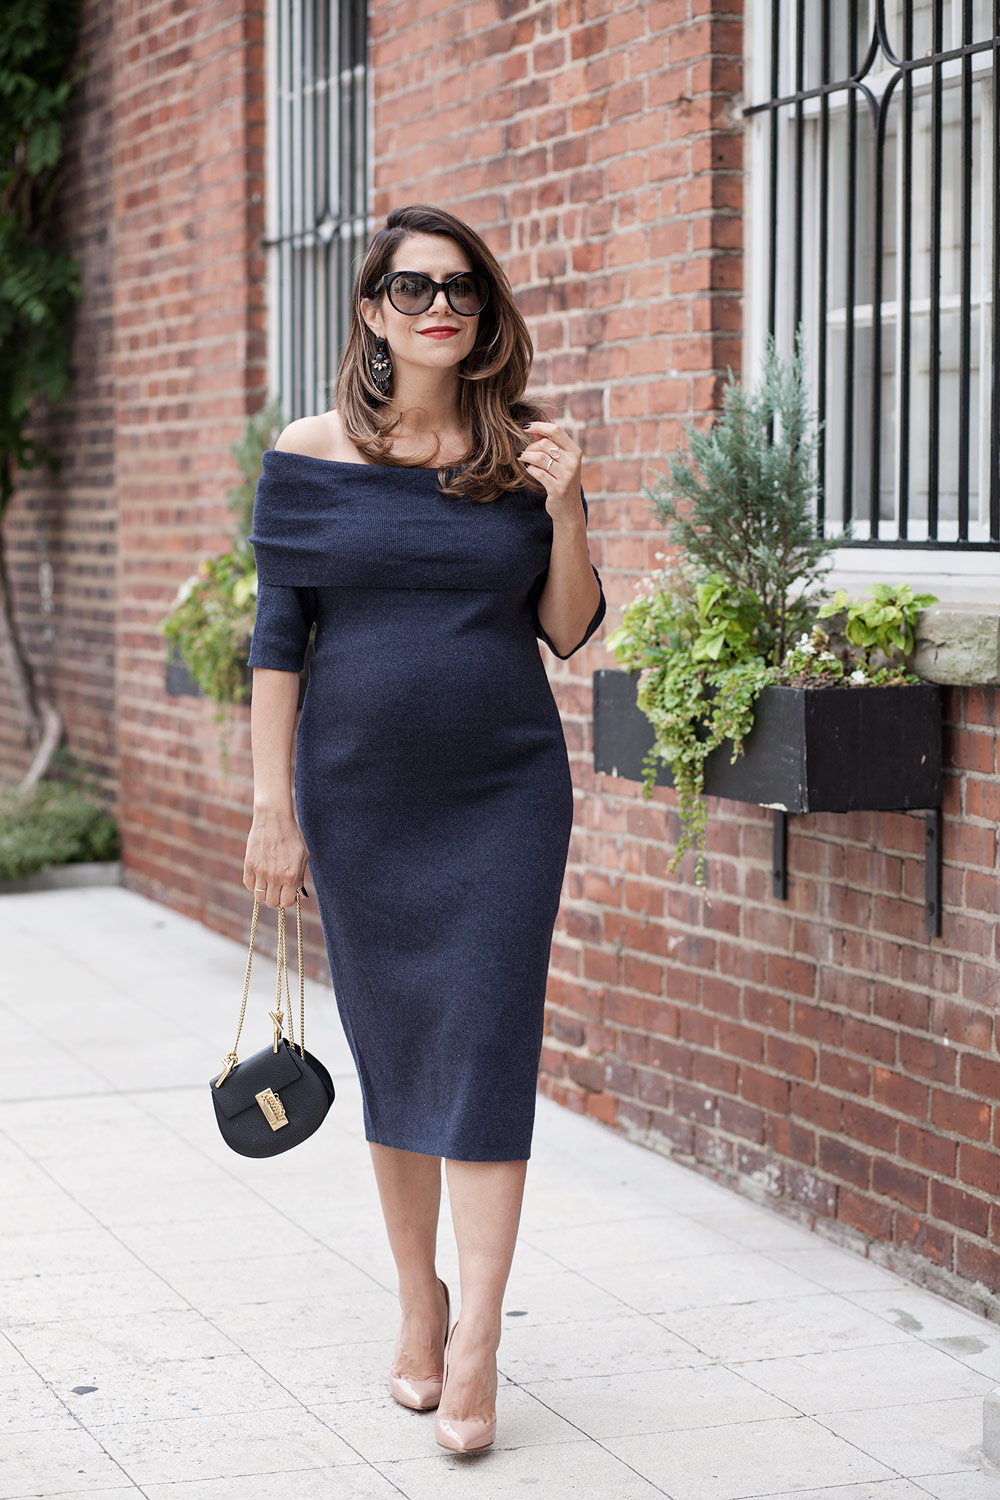 nordstrom-grey-off-the-shoulder-sweater-dress-workwear-chloe-dress-prada-cateye-sunglasses-fall-style-bump-style-maternity-looks-for-fall-corporate-catwalk-2